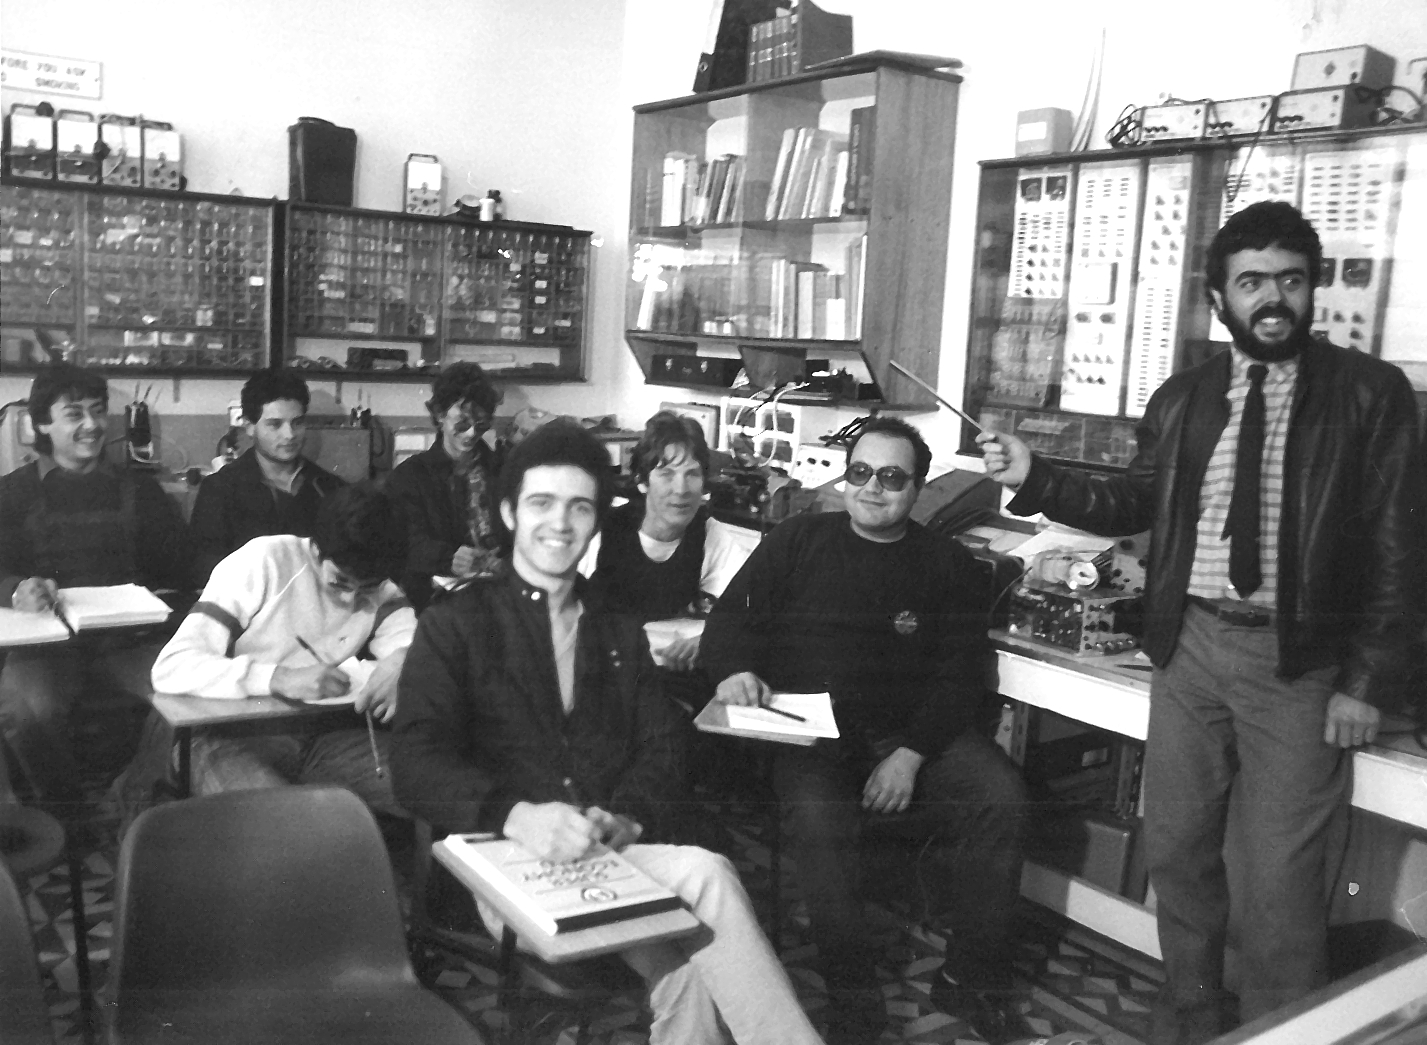 Image of a class in session in the College's earlier days